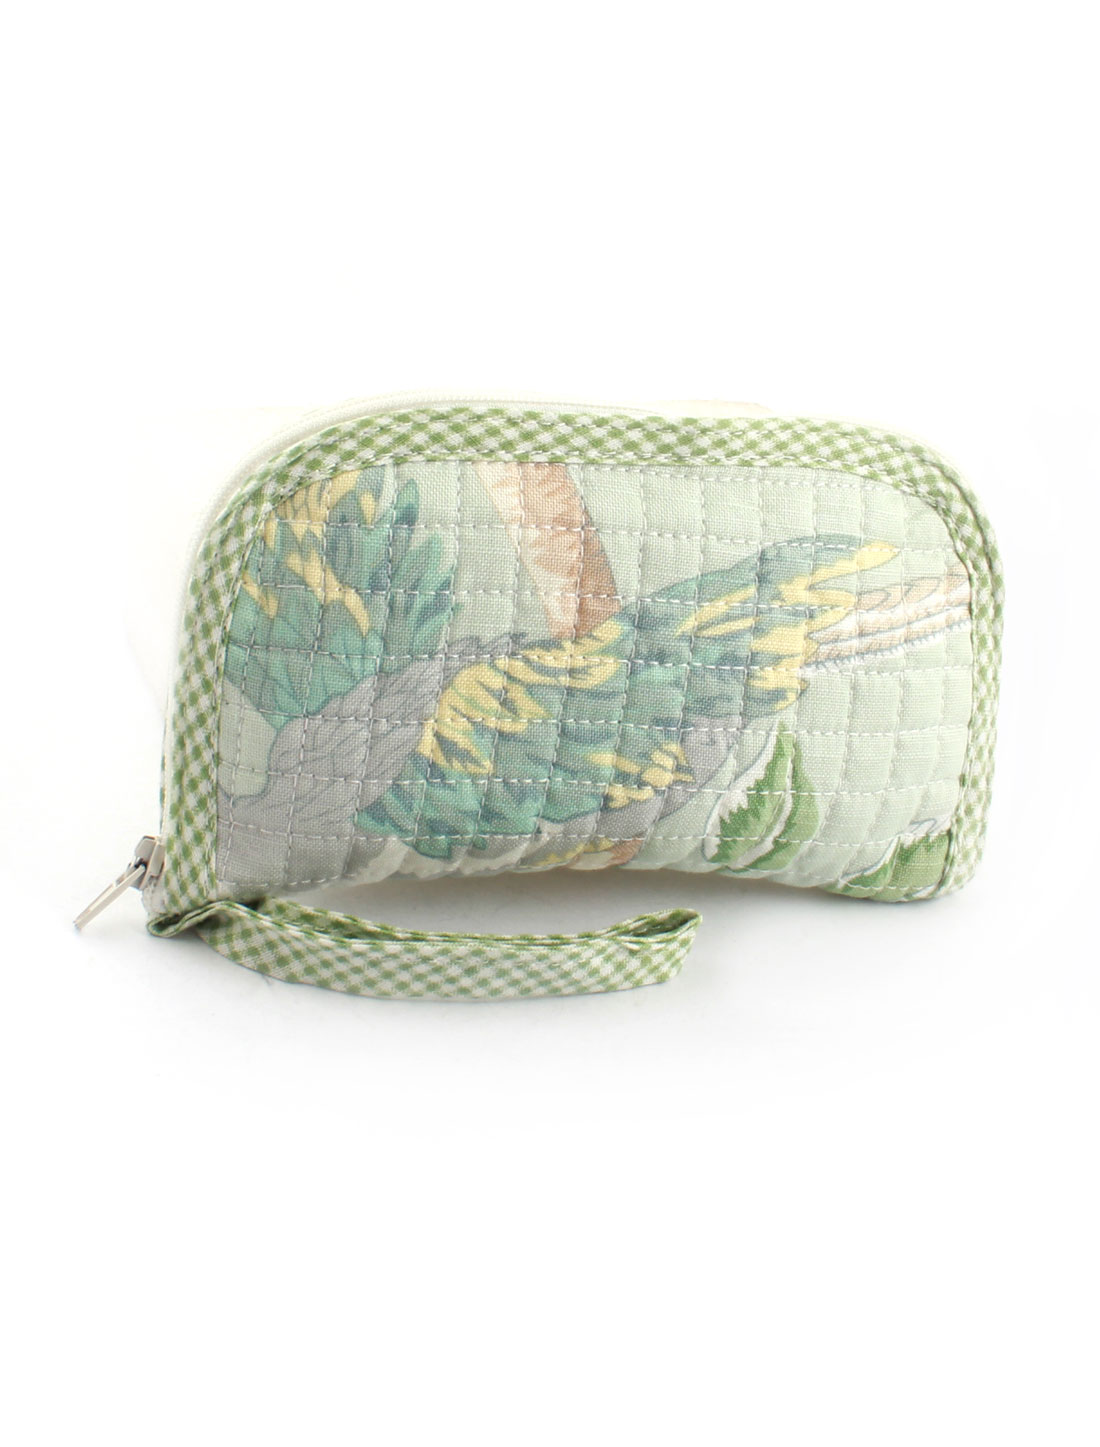 Women Cotten Blends Plaids Leaves Pattern Zip Up Coin Wrist Wallet Purse Green